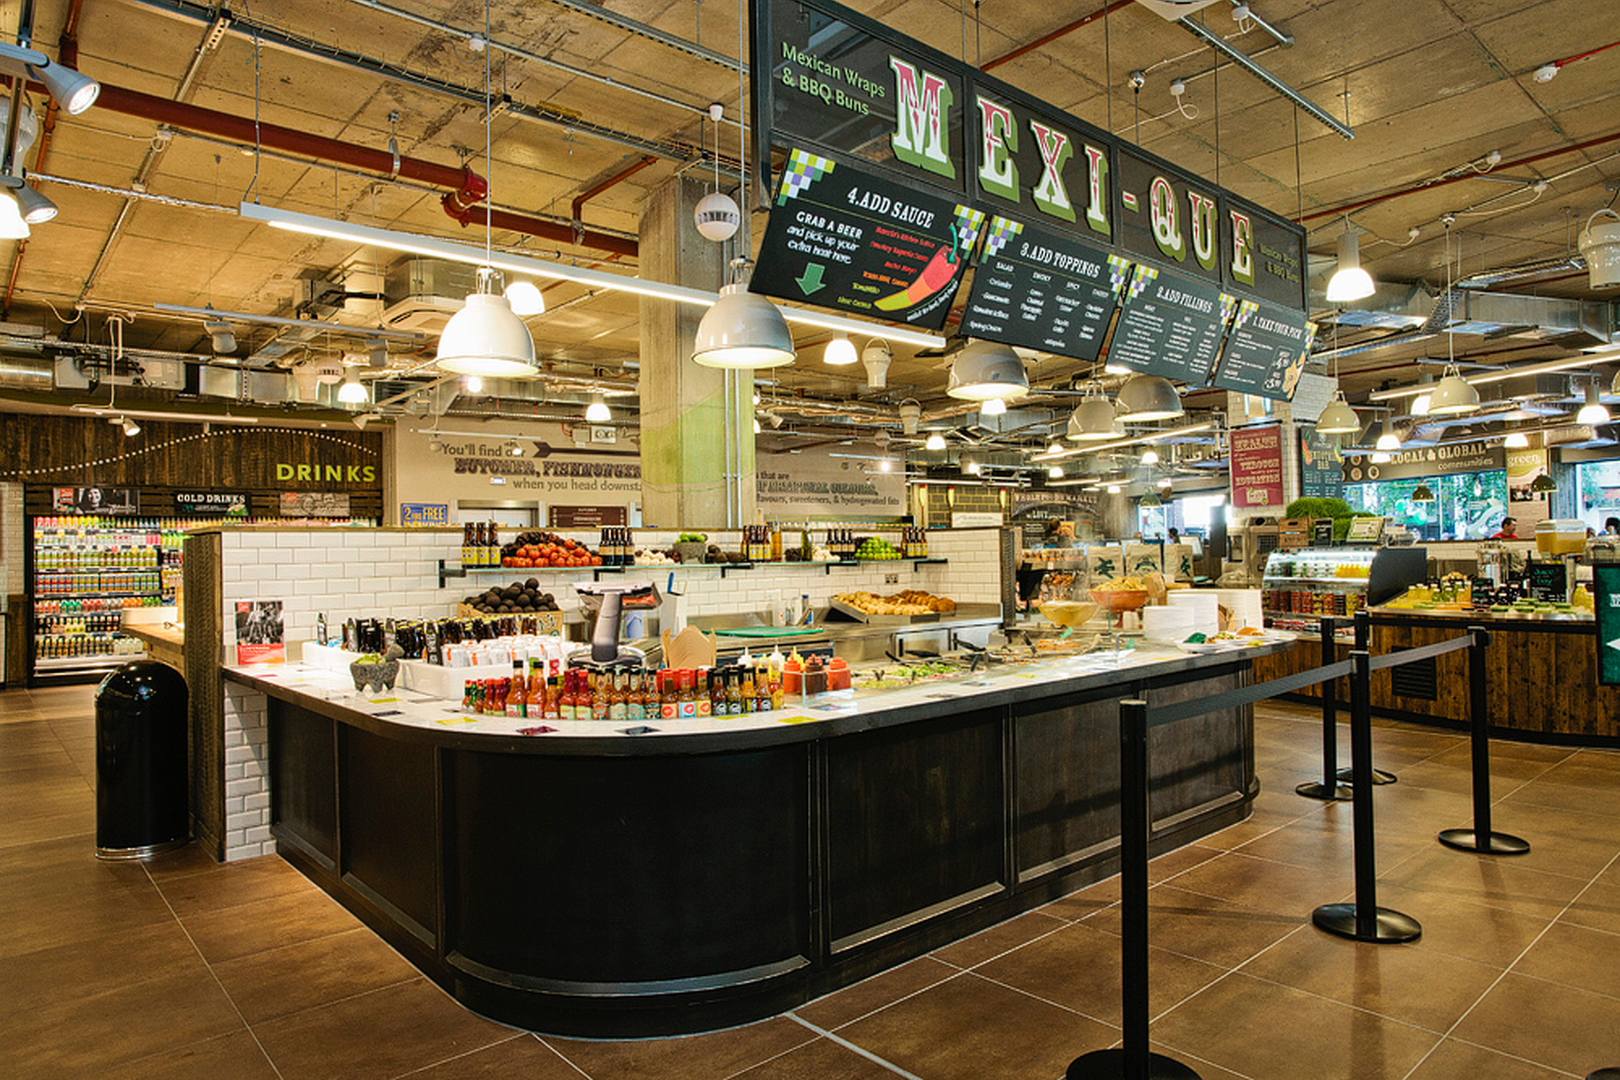 wfm-richmond-food-bar-01